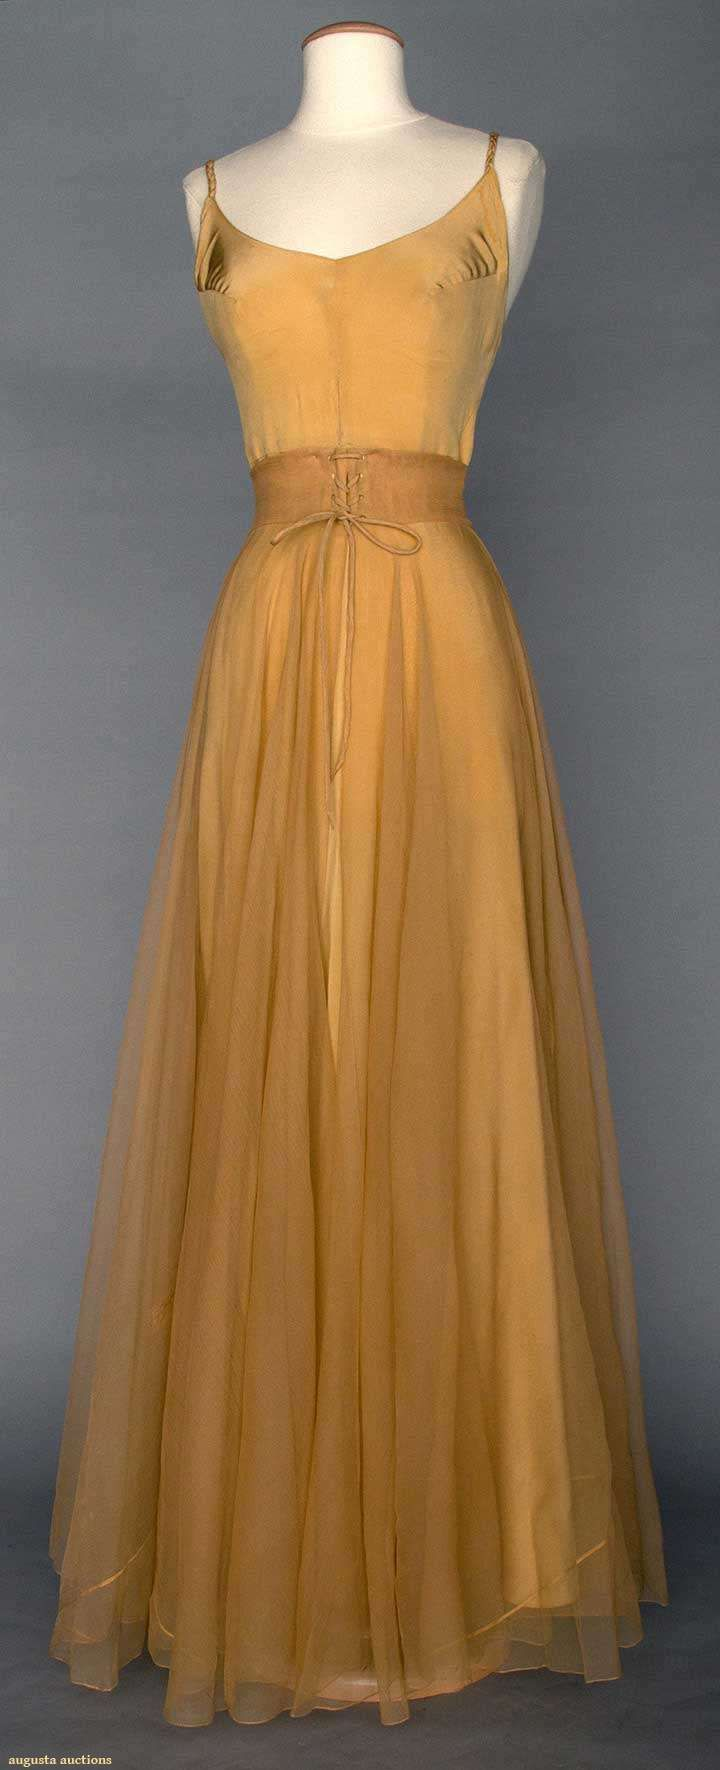 Valentina Silk Evening Skirt, 1930s, Augusta Auctions, April 9, 2014 - NYC